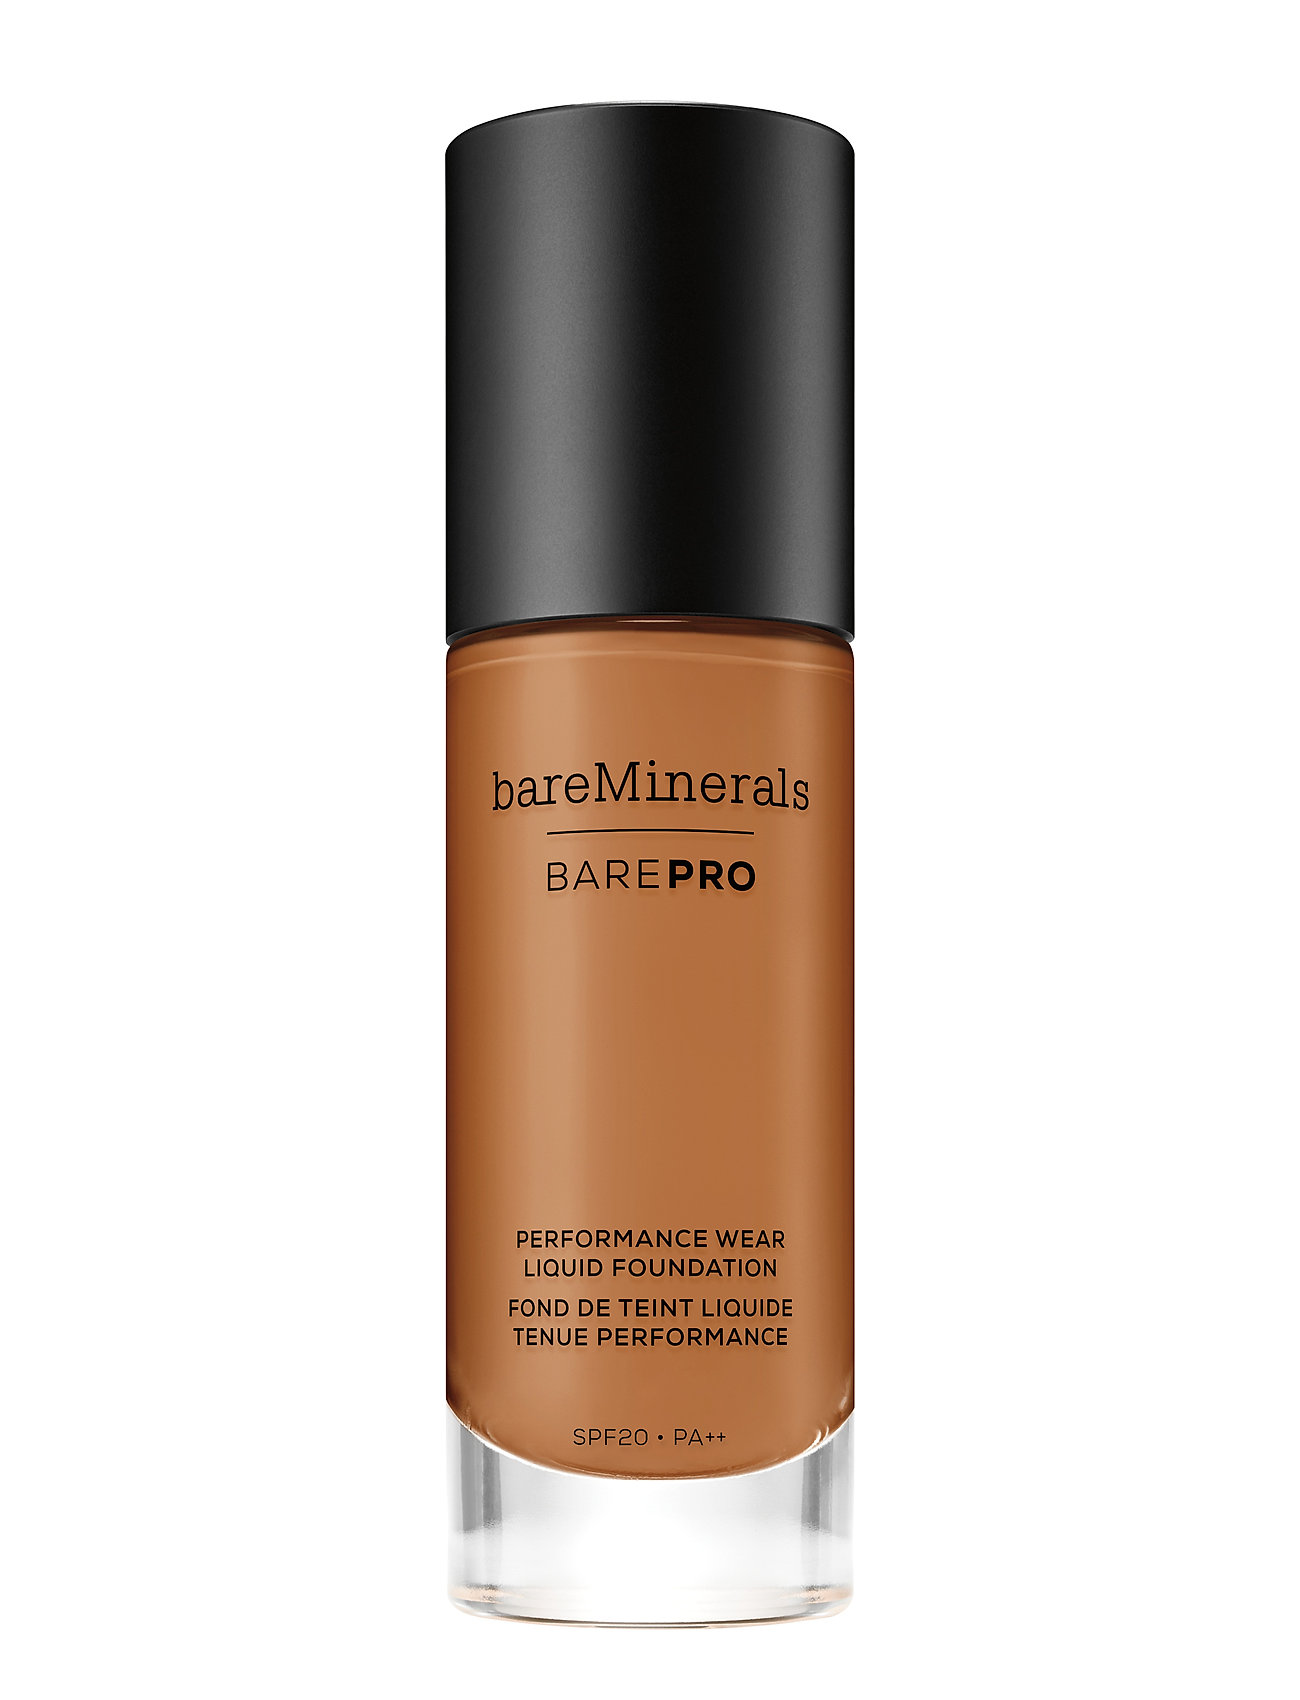 Image of Barepro Performance Wear Liquid Foundation Spf 20 Foundation Makeup BareMinerals (3409849897)